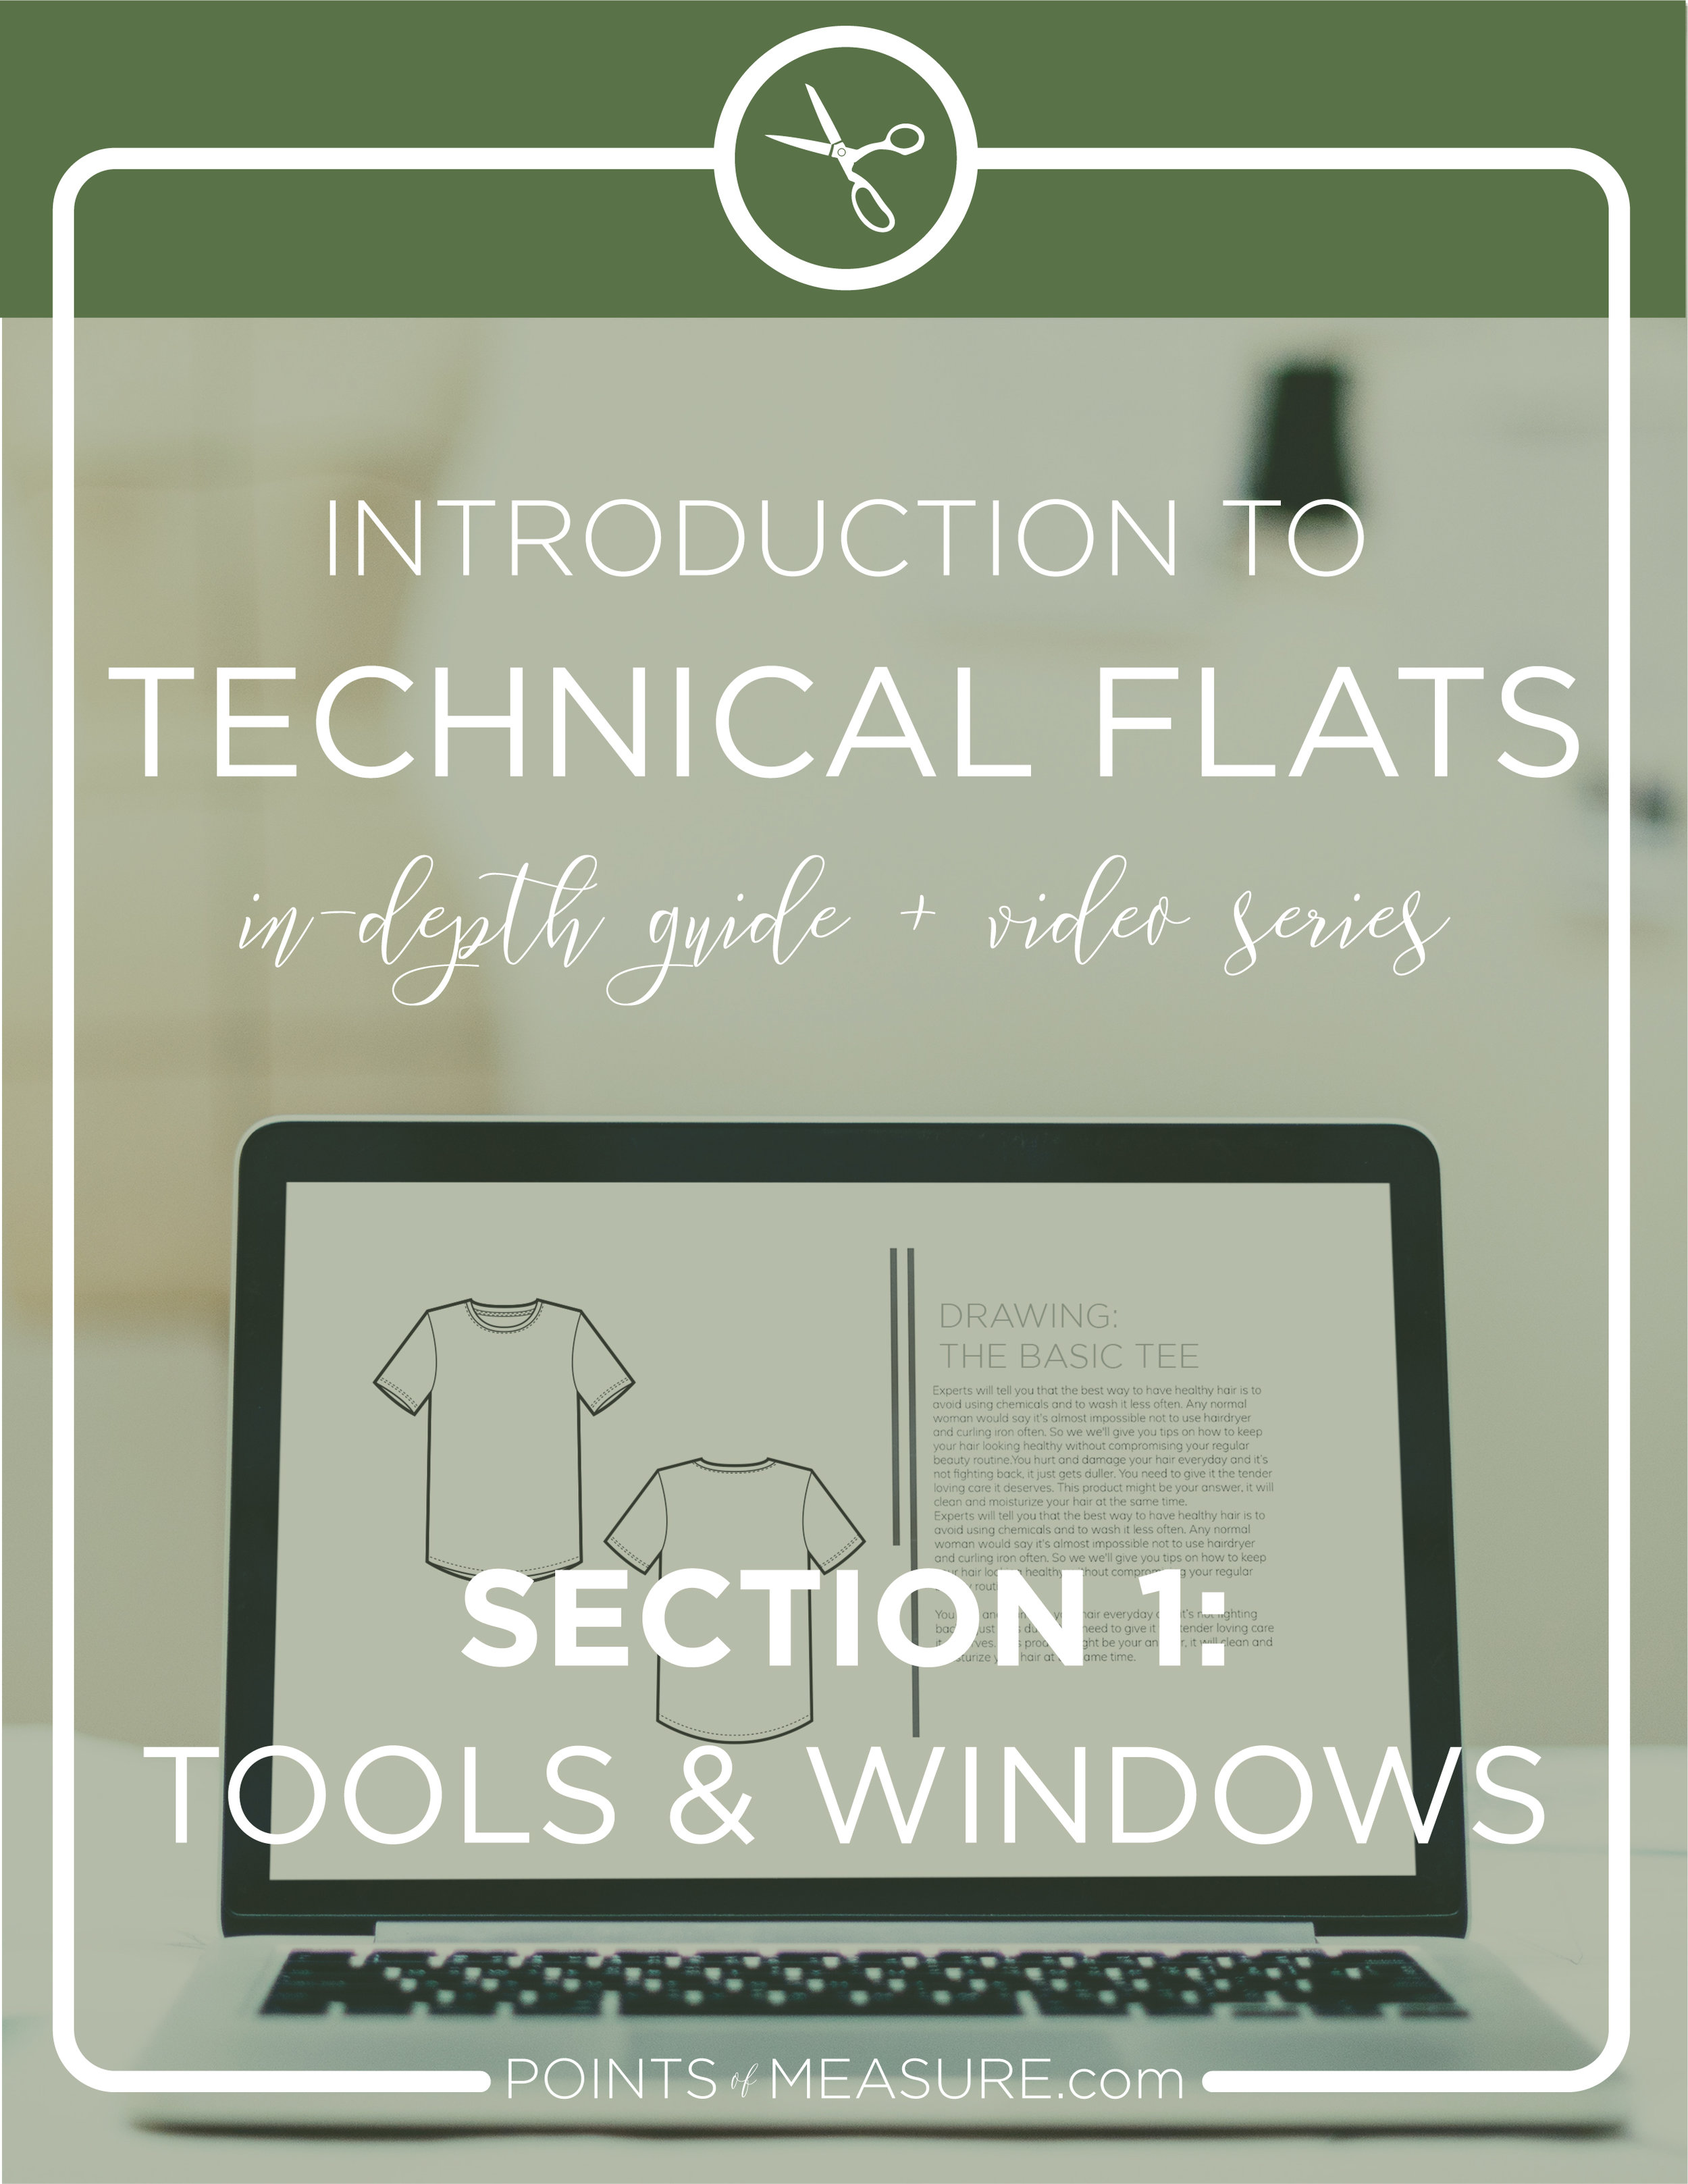 introduction-to-technical-flats-section-1-tools-and-windows-points-of-measure.jpg